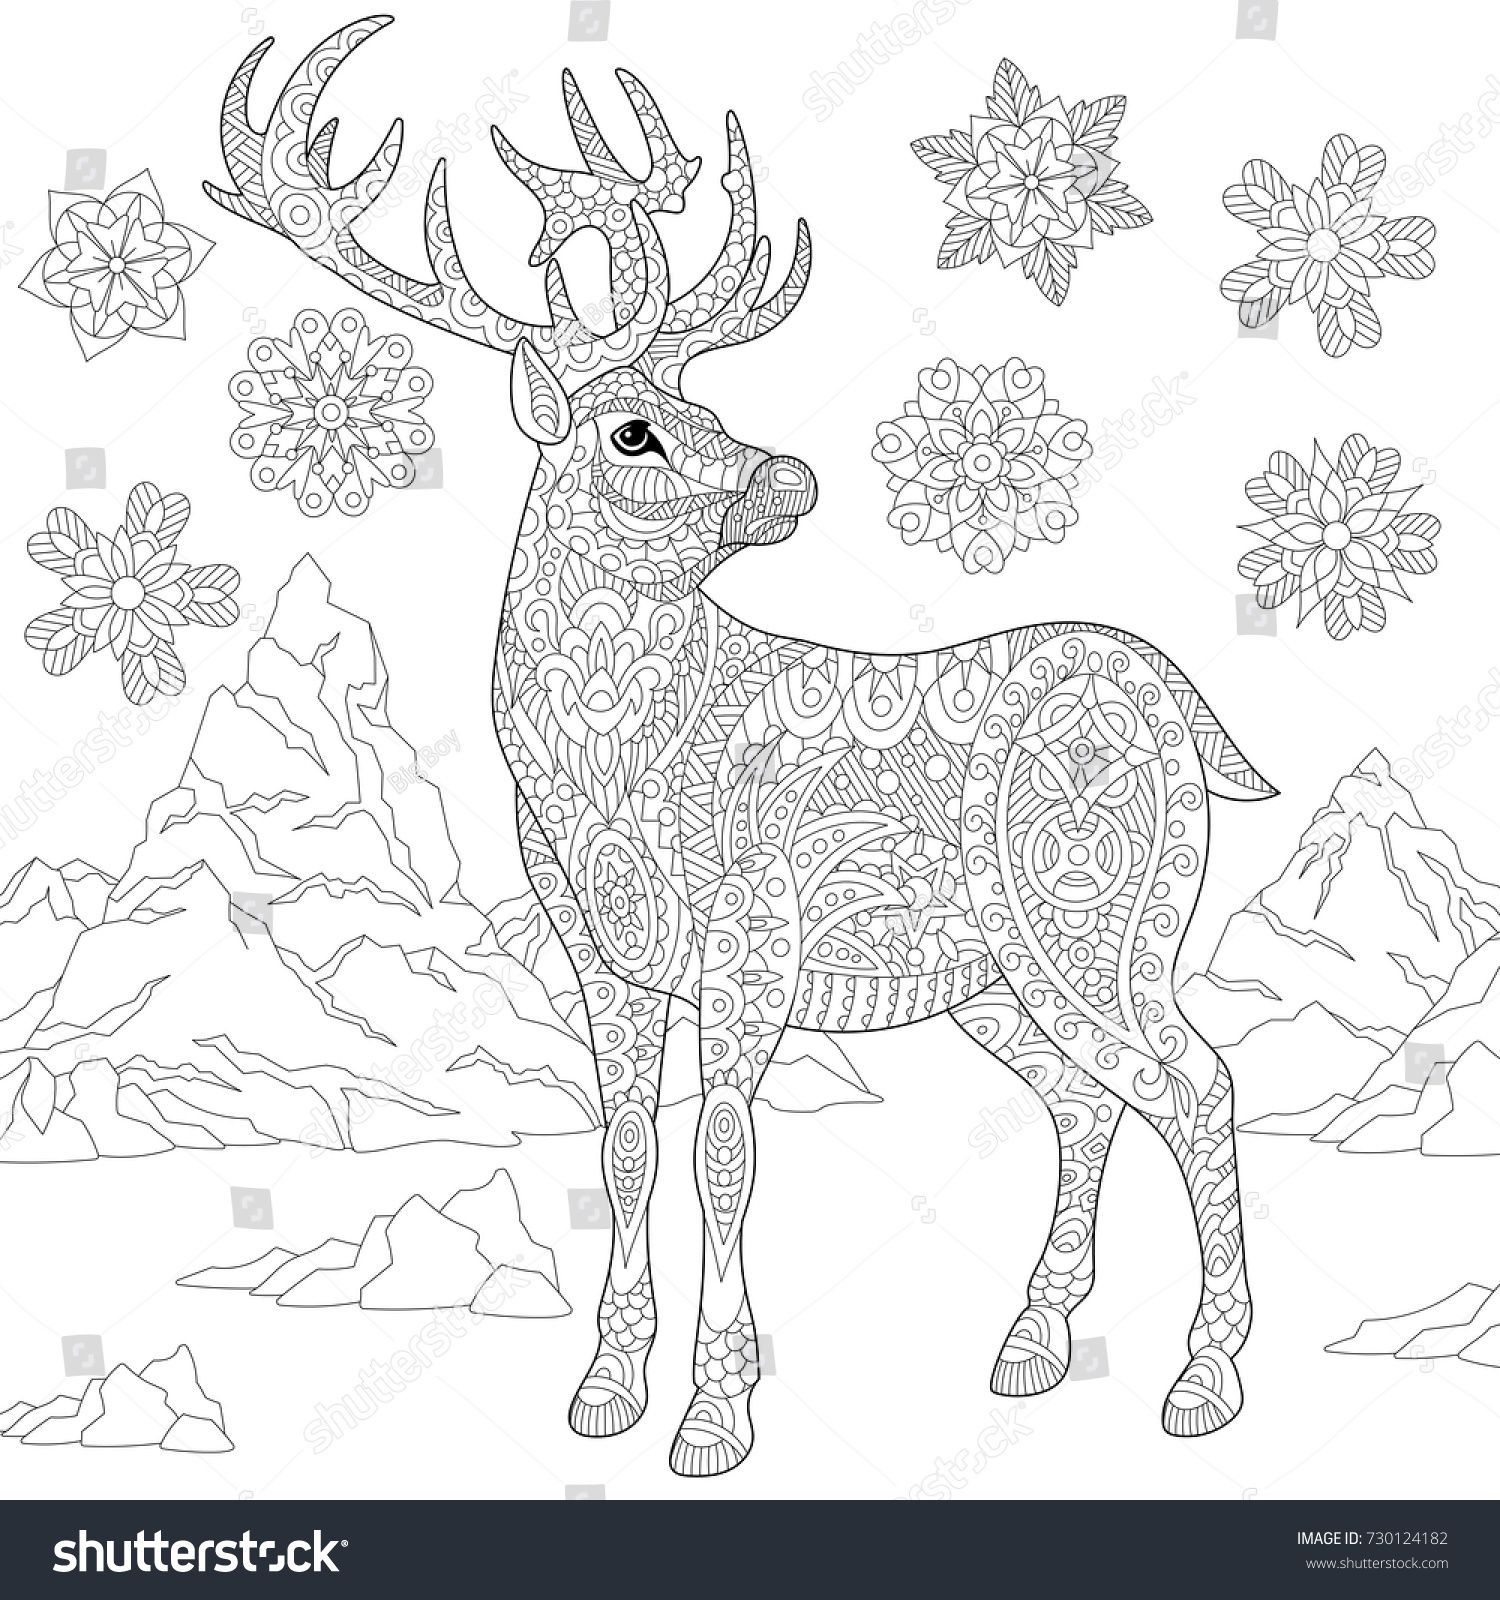 Pin Op Kids Coloring Pages